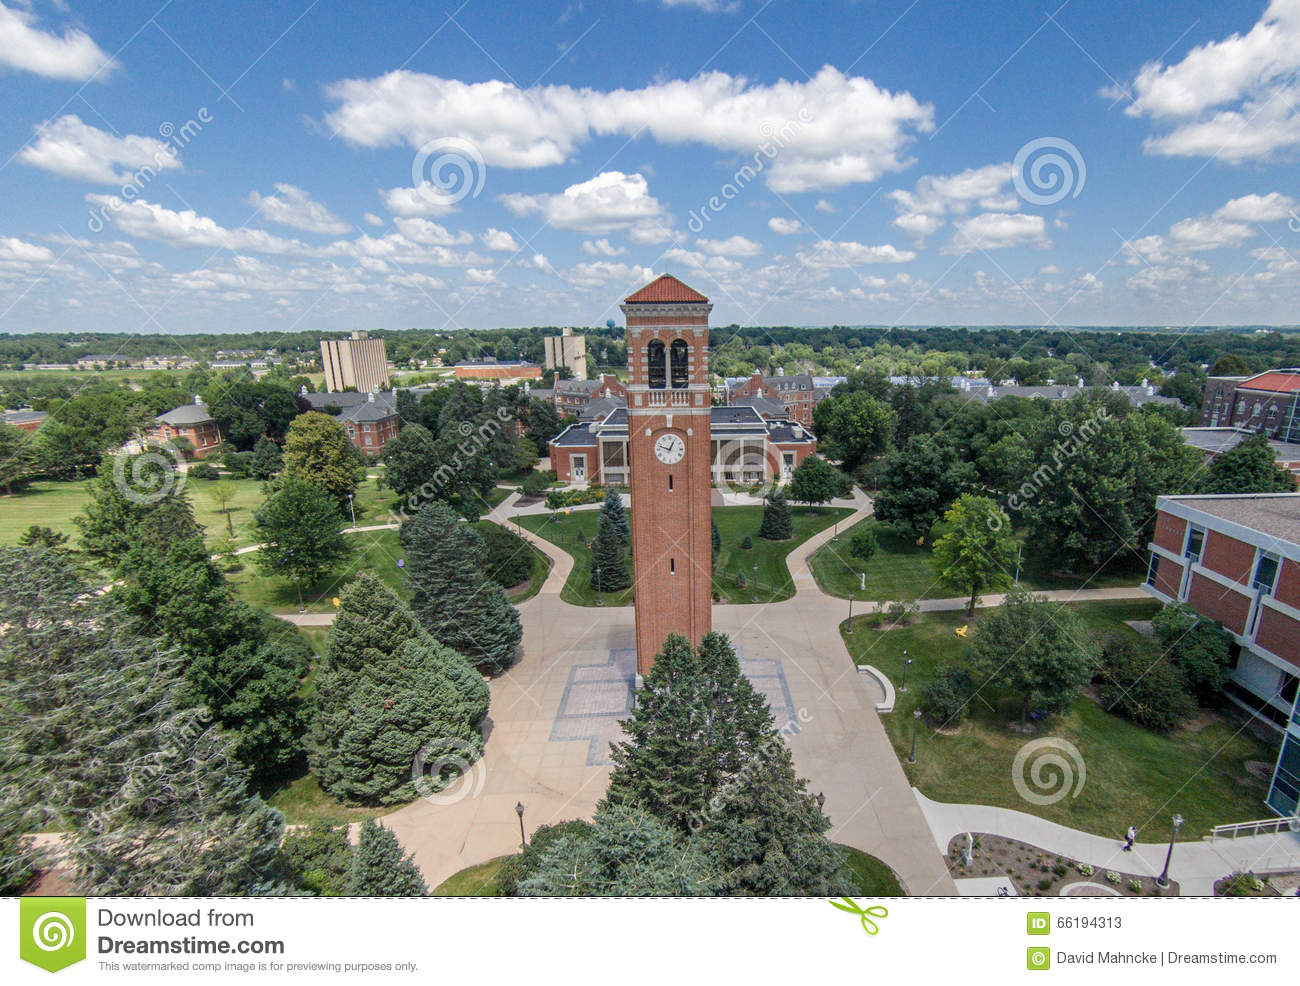 University Of Northern Iowa Campanile Editorial Stock Photo - Image of campus, cedar: 66194313